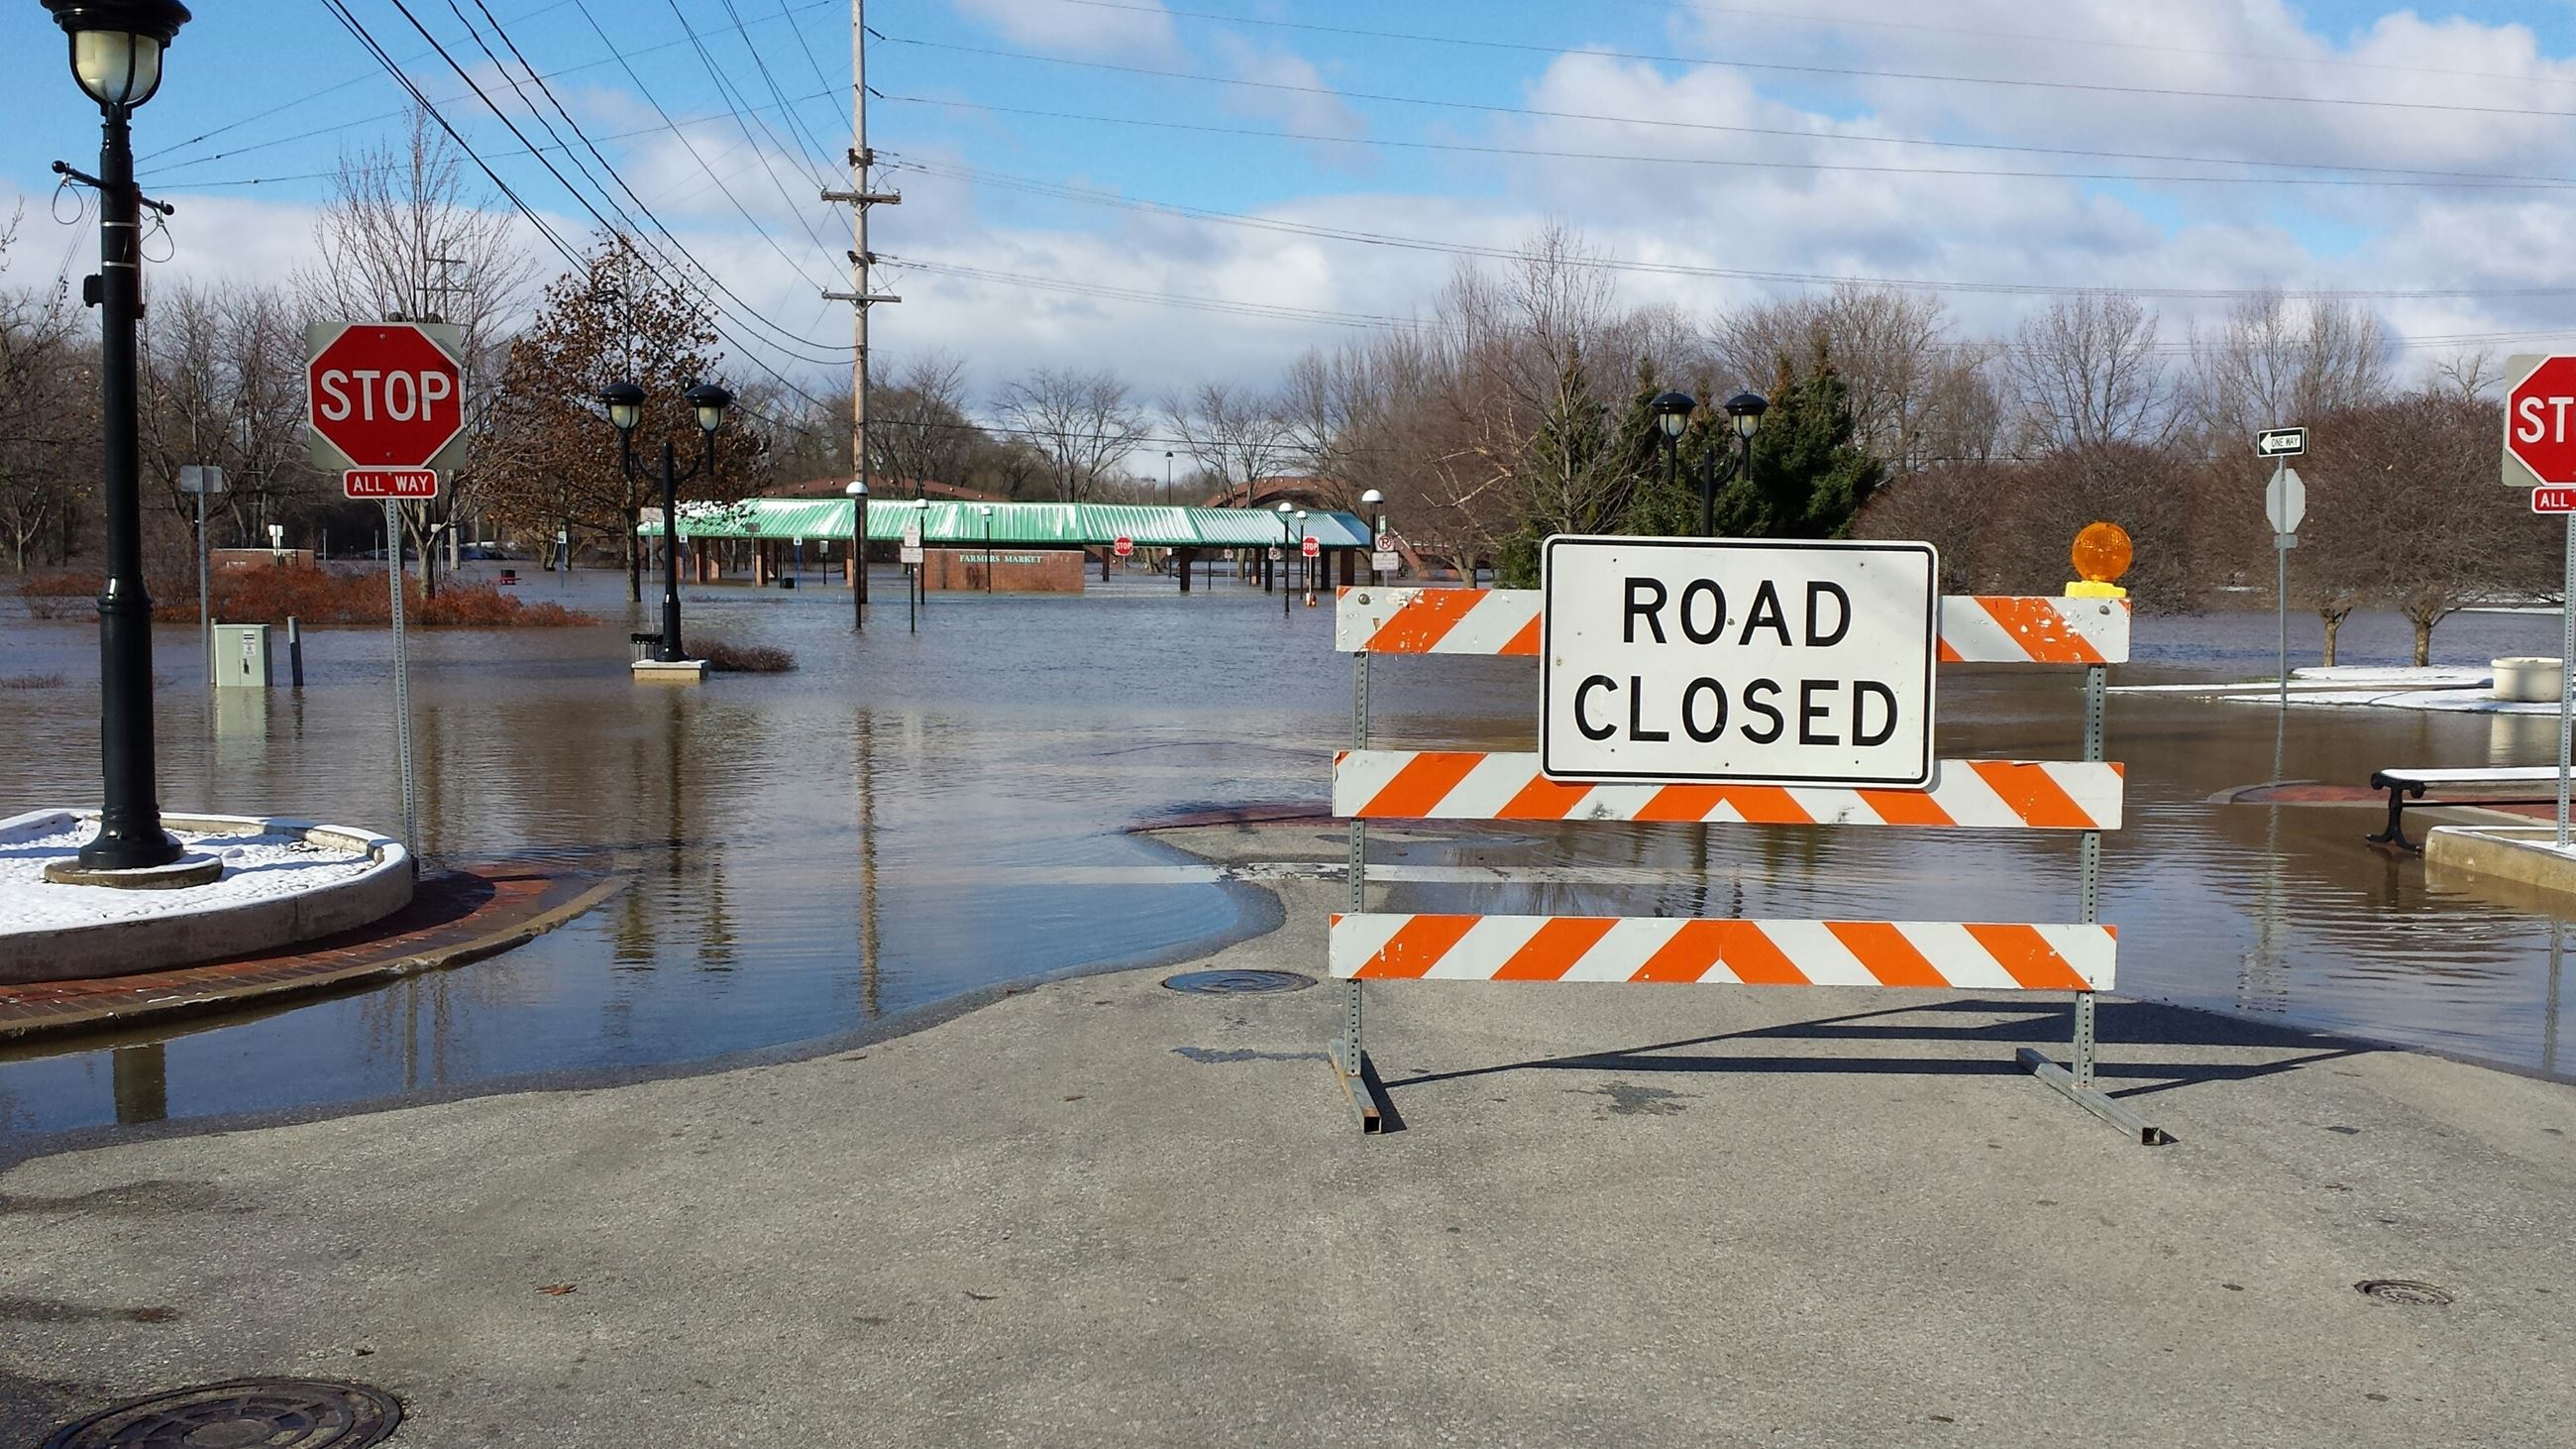 Image of a road closed due to flooding